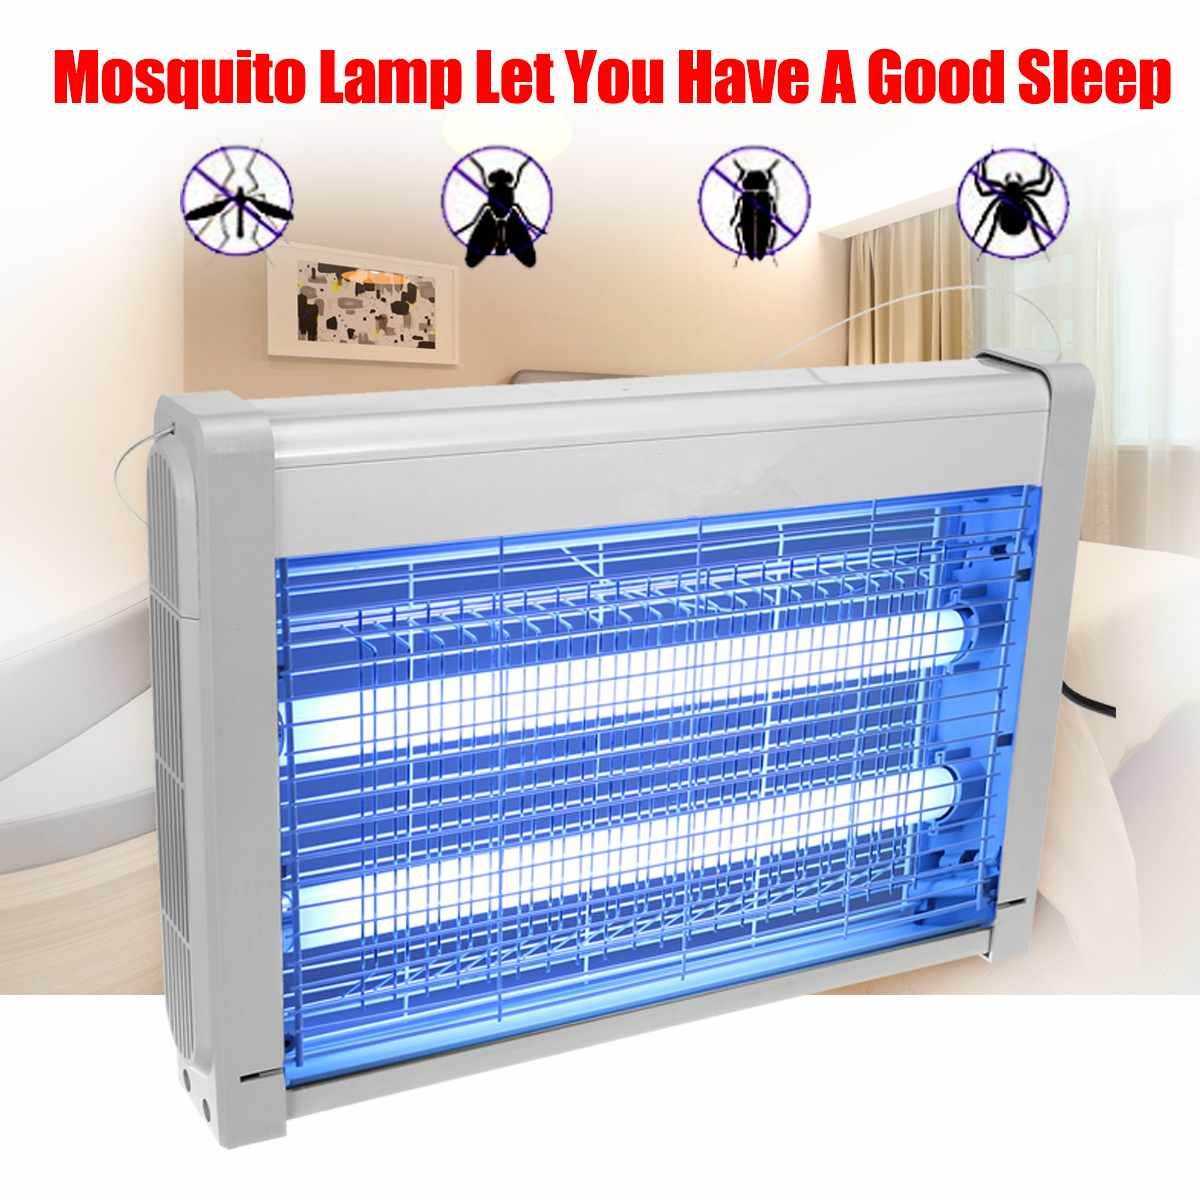 220V 20W Insect Killer Electric Mosquito Killer Trap Light